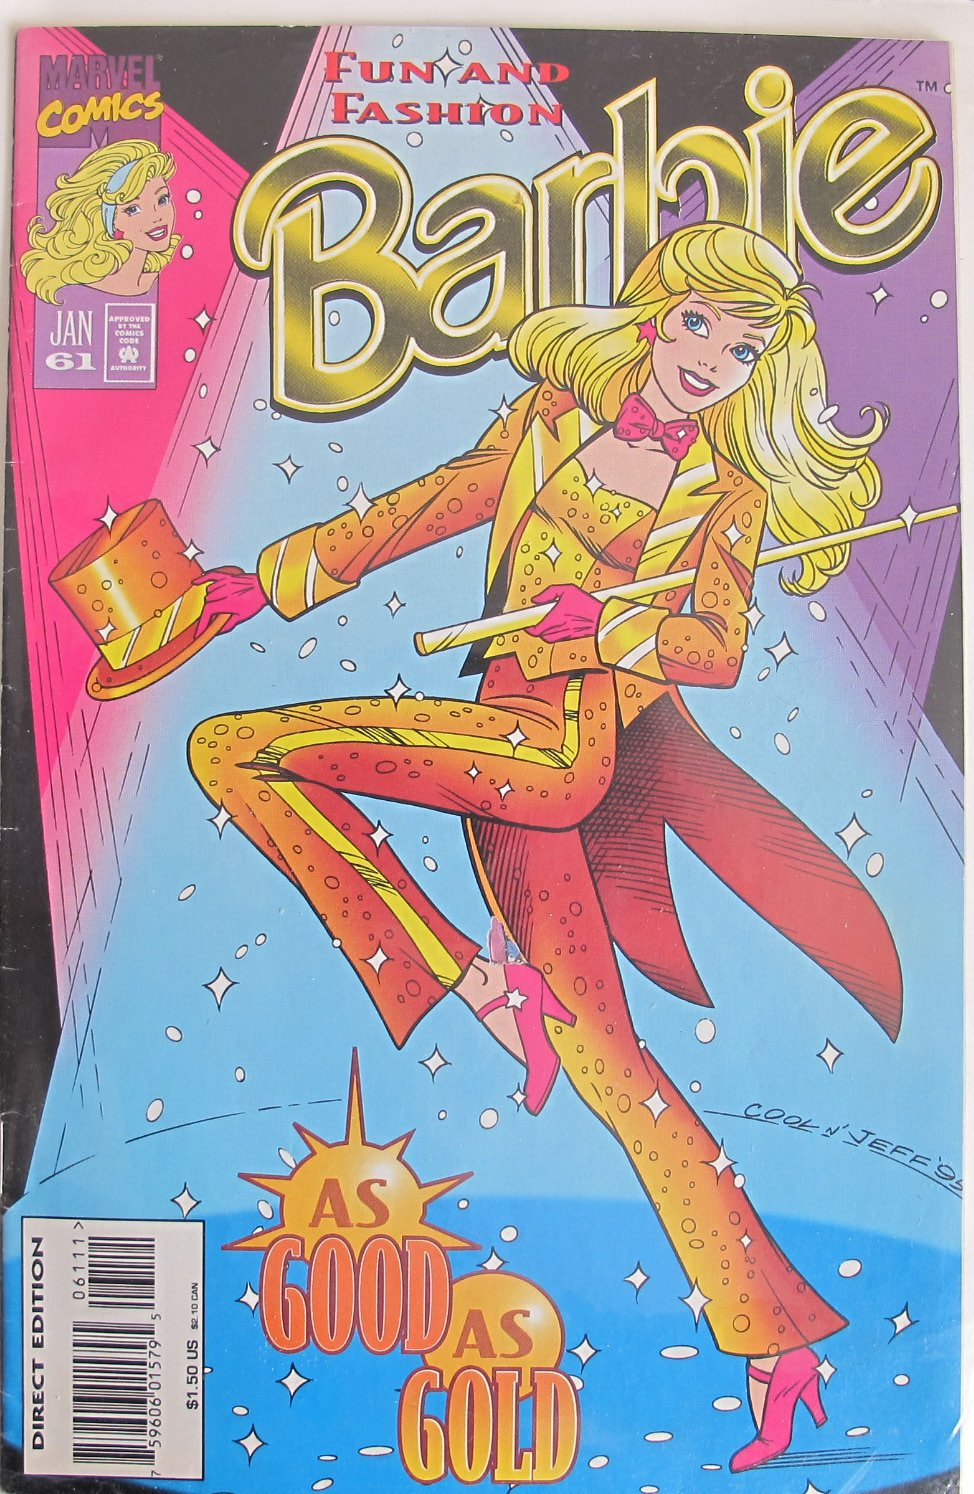 Marvel Comics Group Marvel Comics BARBIE Fun and Fashion AS GOOD AS GOLD Jan #61 1996 Direct Edition